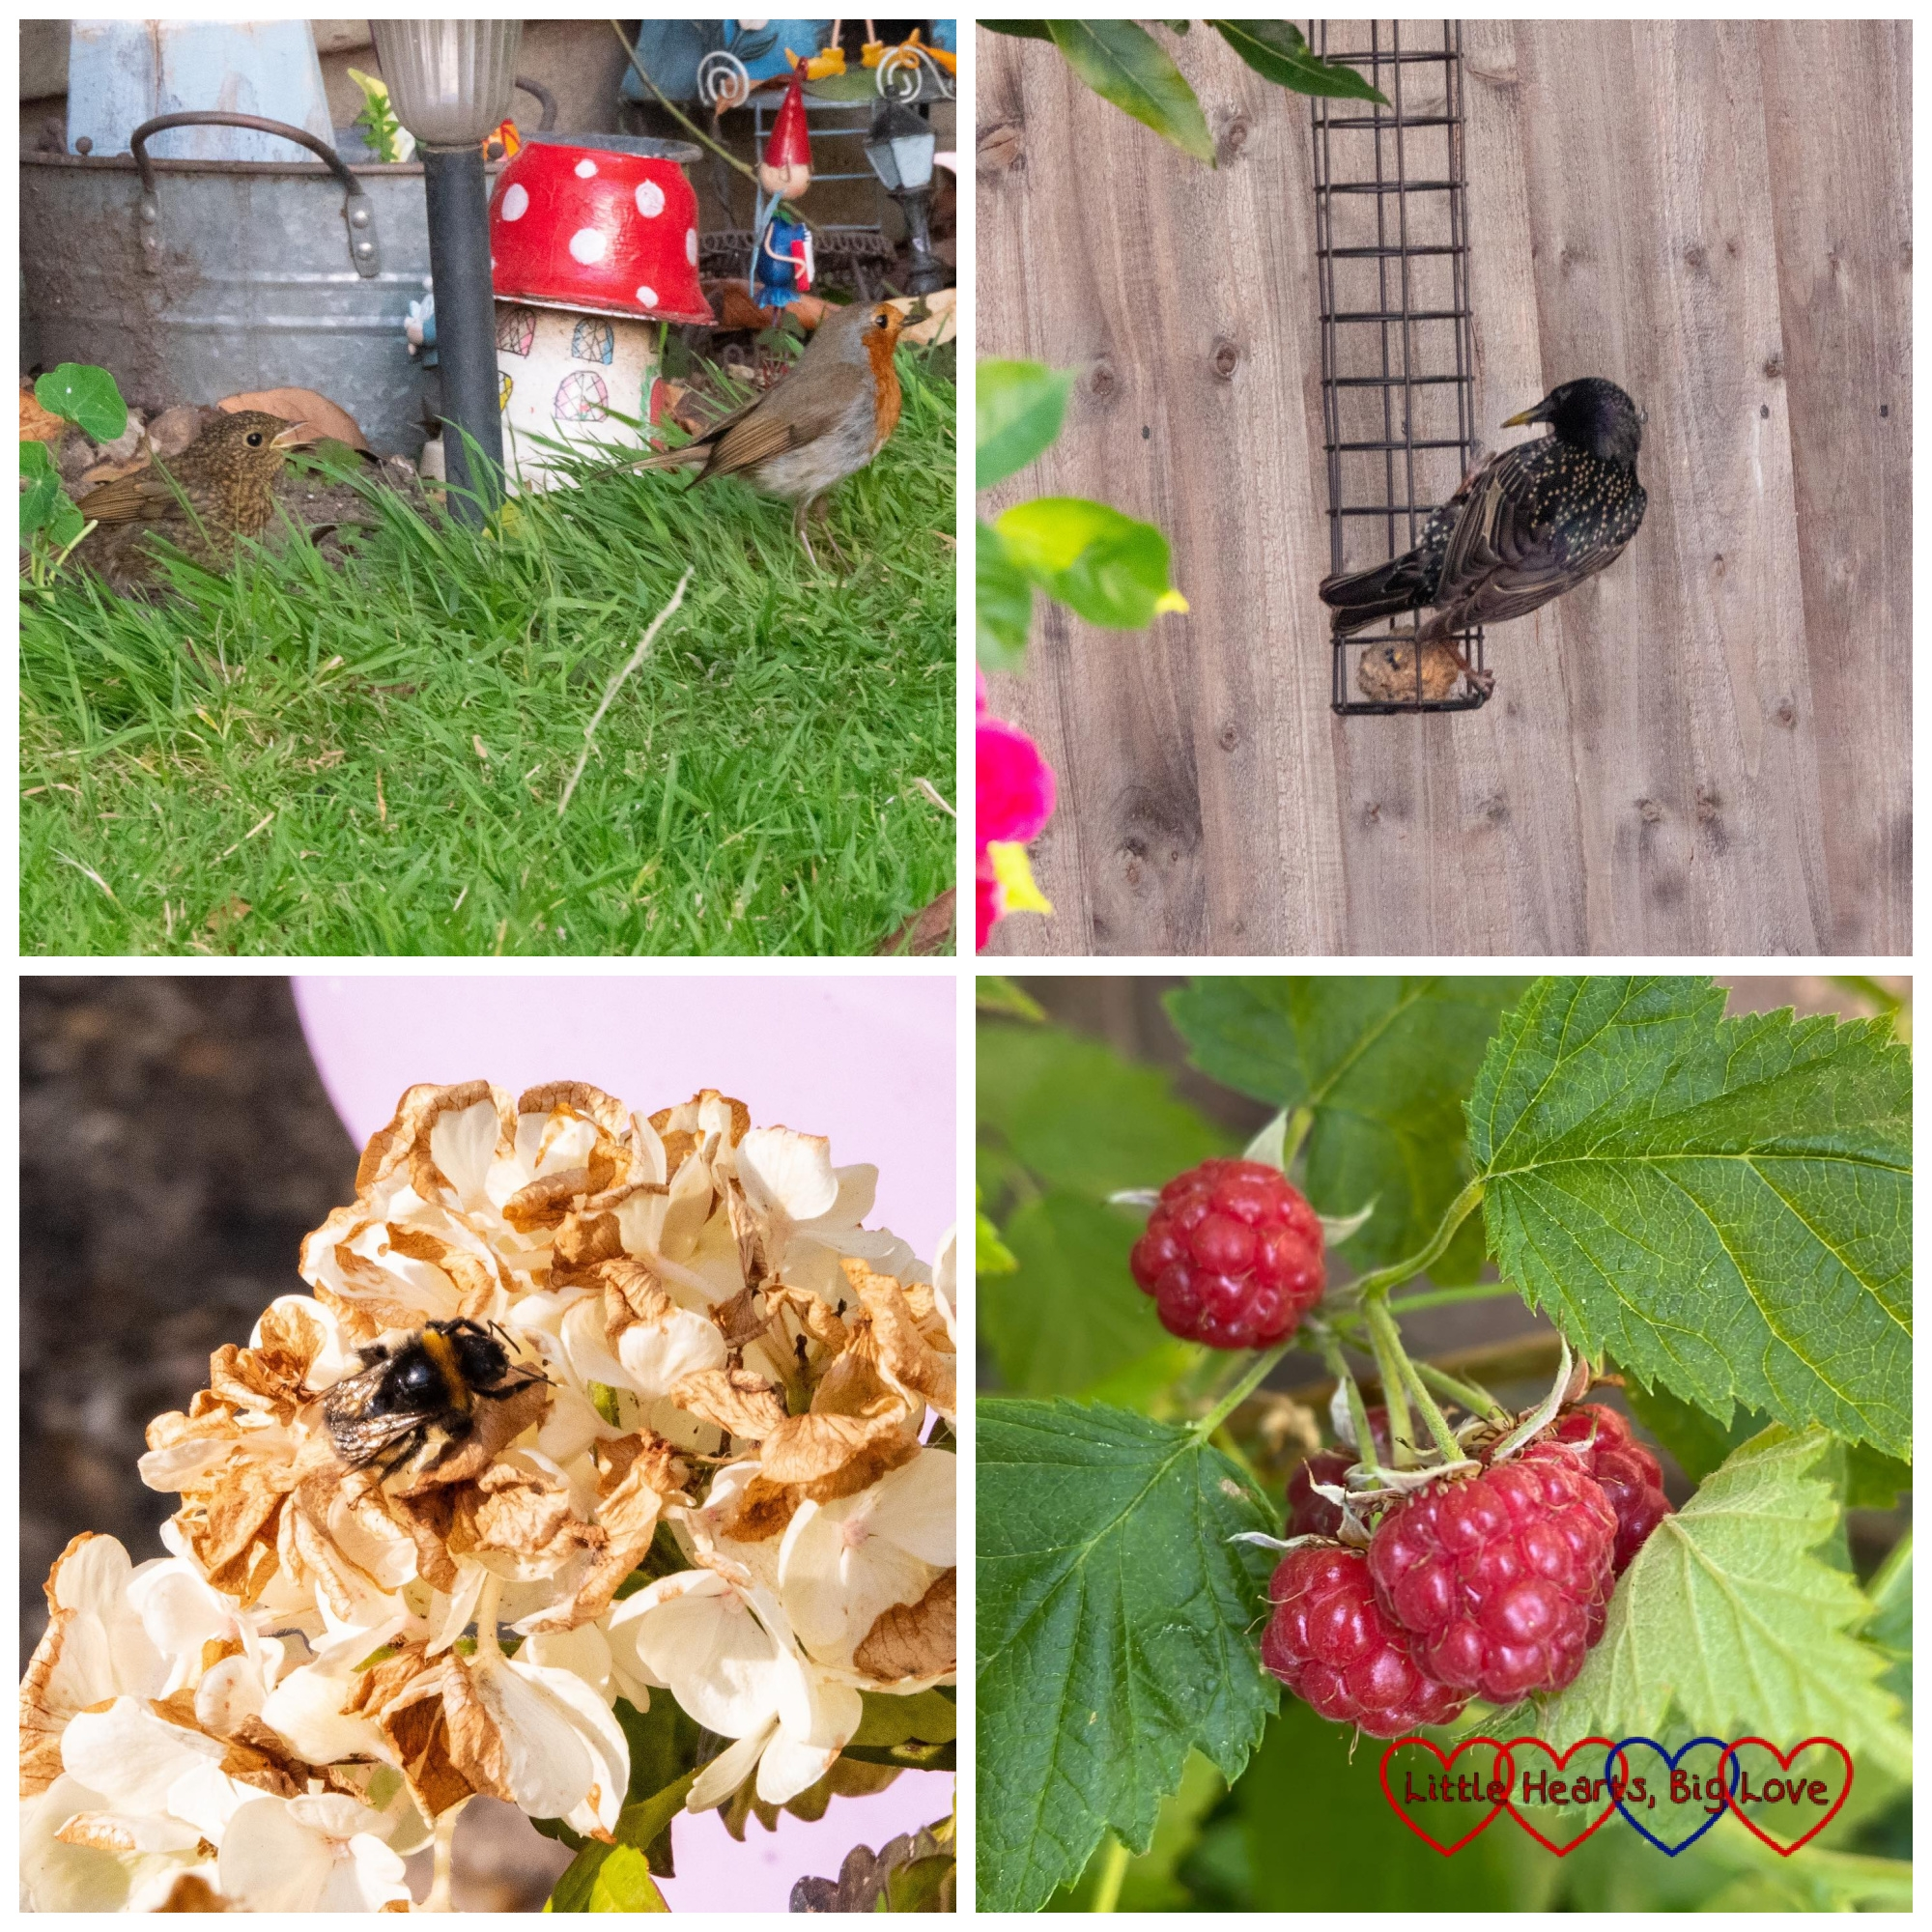 A robin and its chick in the fairy garden; a starling on the fat ball feeder; a bee on the hydrangea; raspberries ripening on the raspberry bush